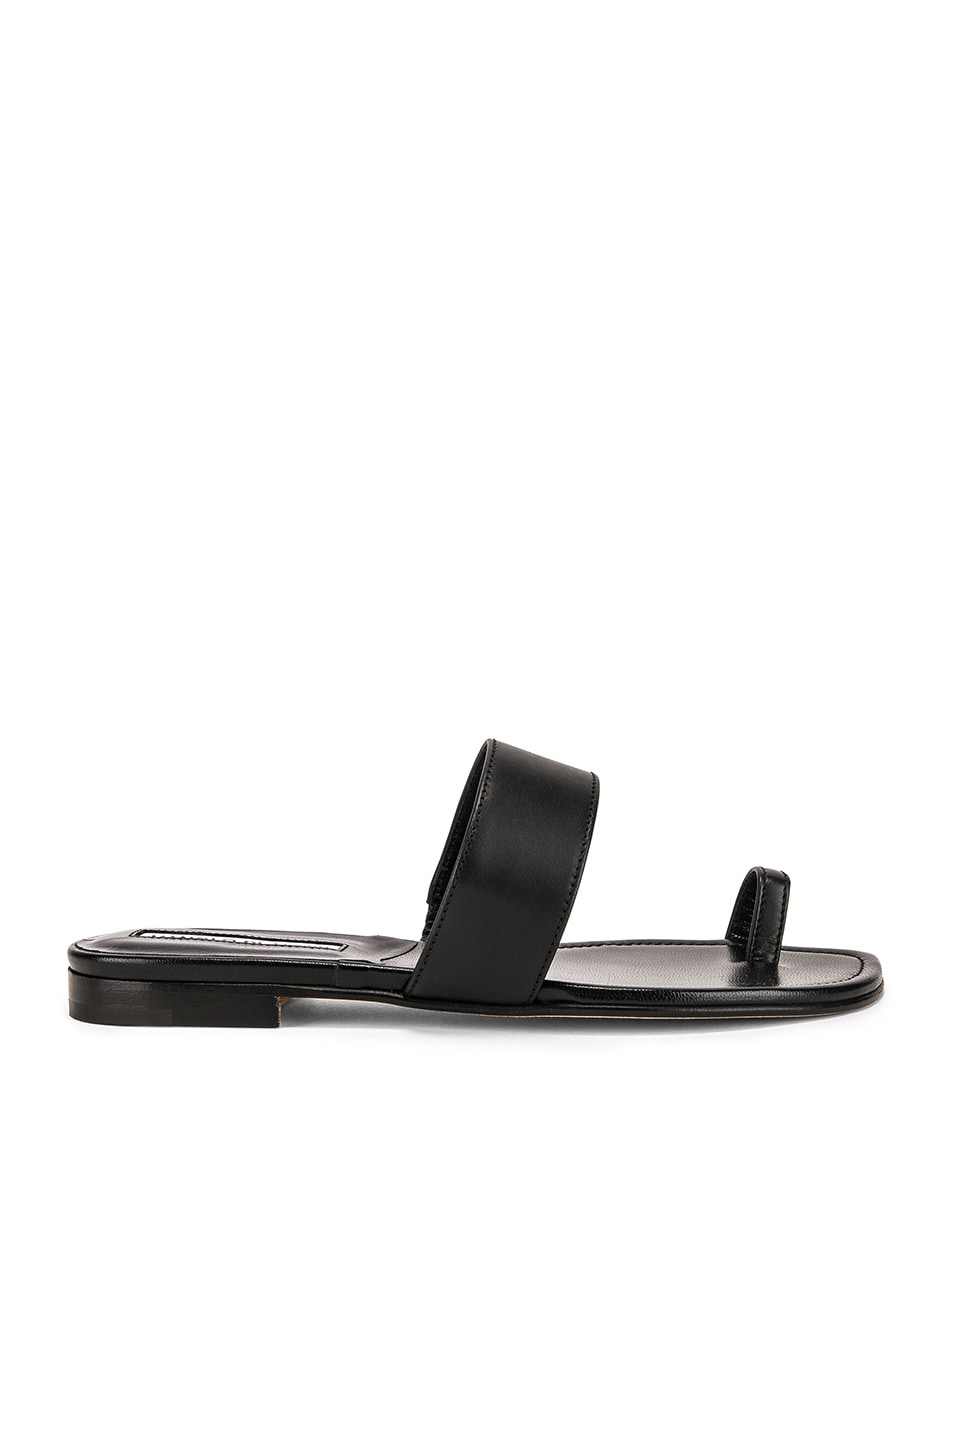 Image 1 of Manolo Blahnik Messen Sandal in Black Calf